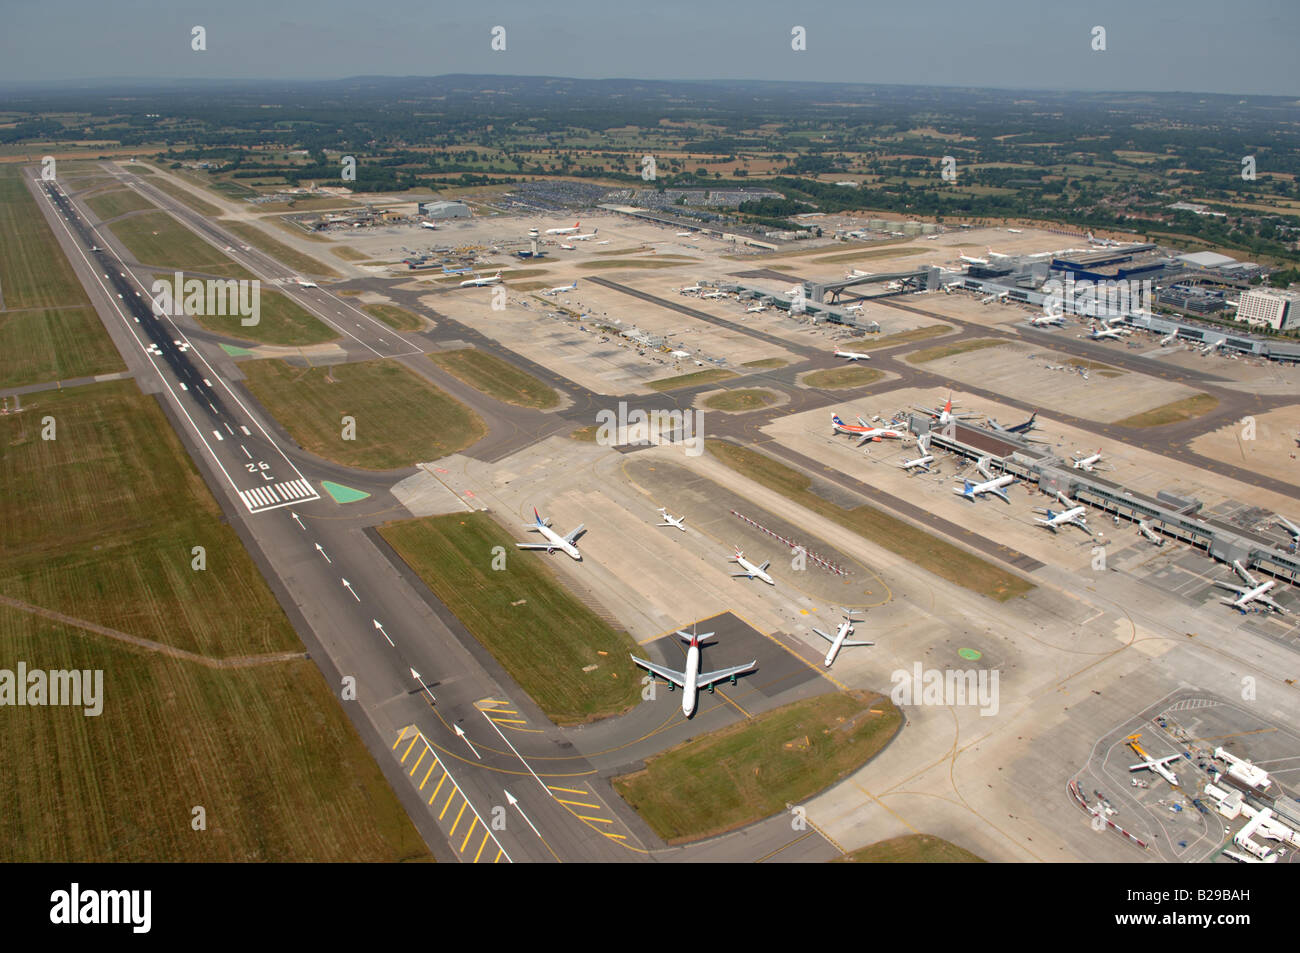 Gatwick Airport Date 12 03 2008 Ref ZB648 111149 0033 COMPULSORY CREDIT World Pictures Photoshot - Stock Image